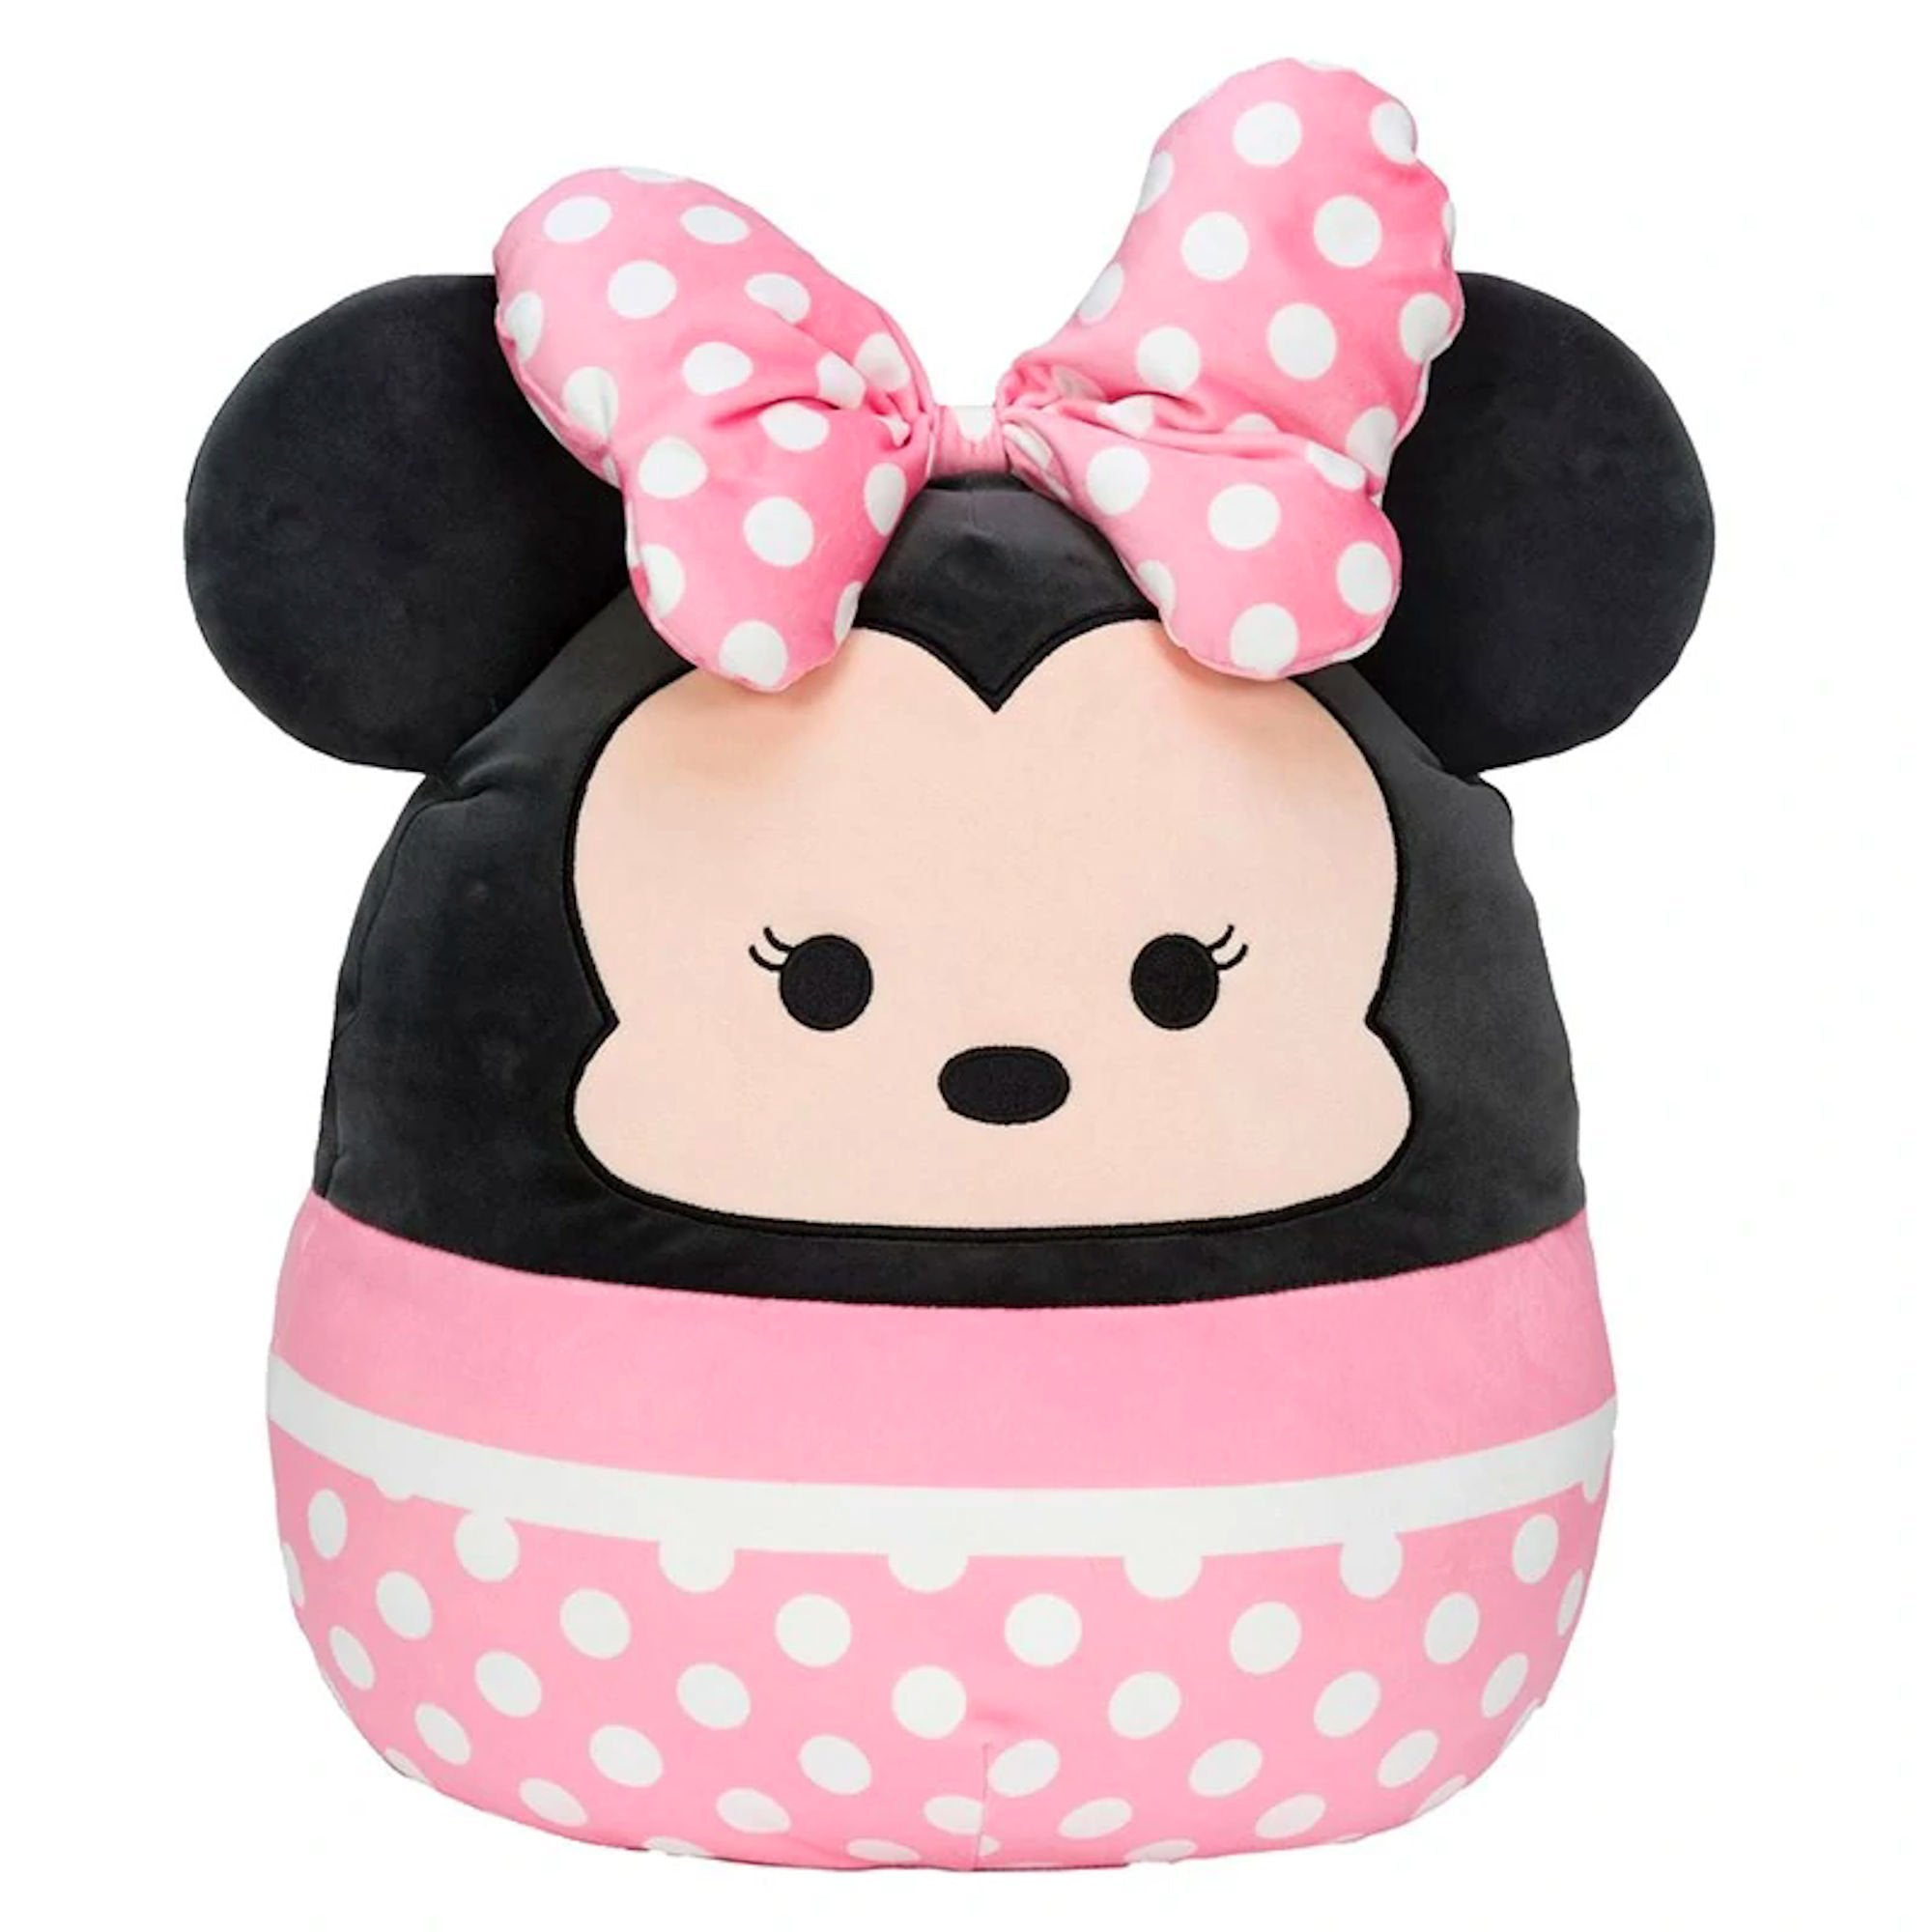 12IN Minnie Mouse Squishmallow